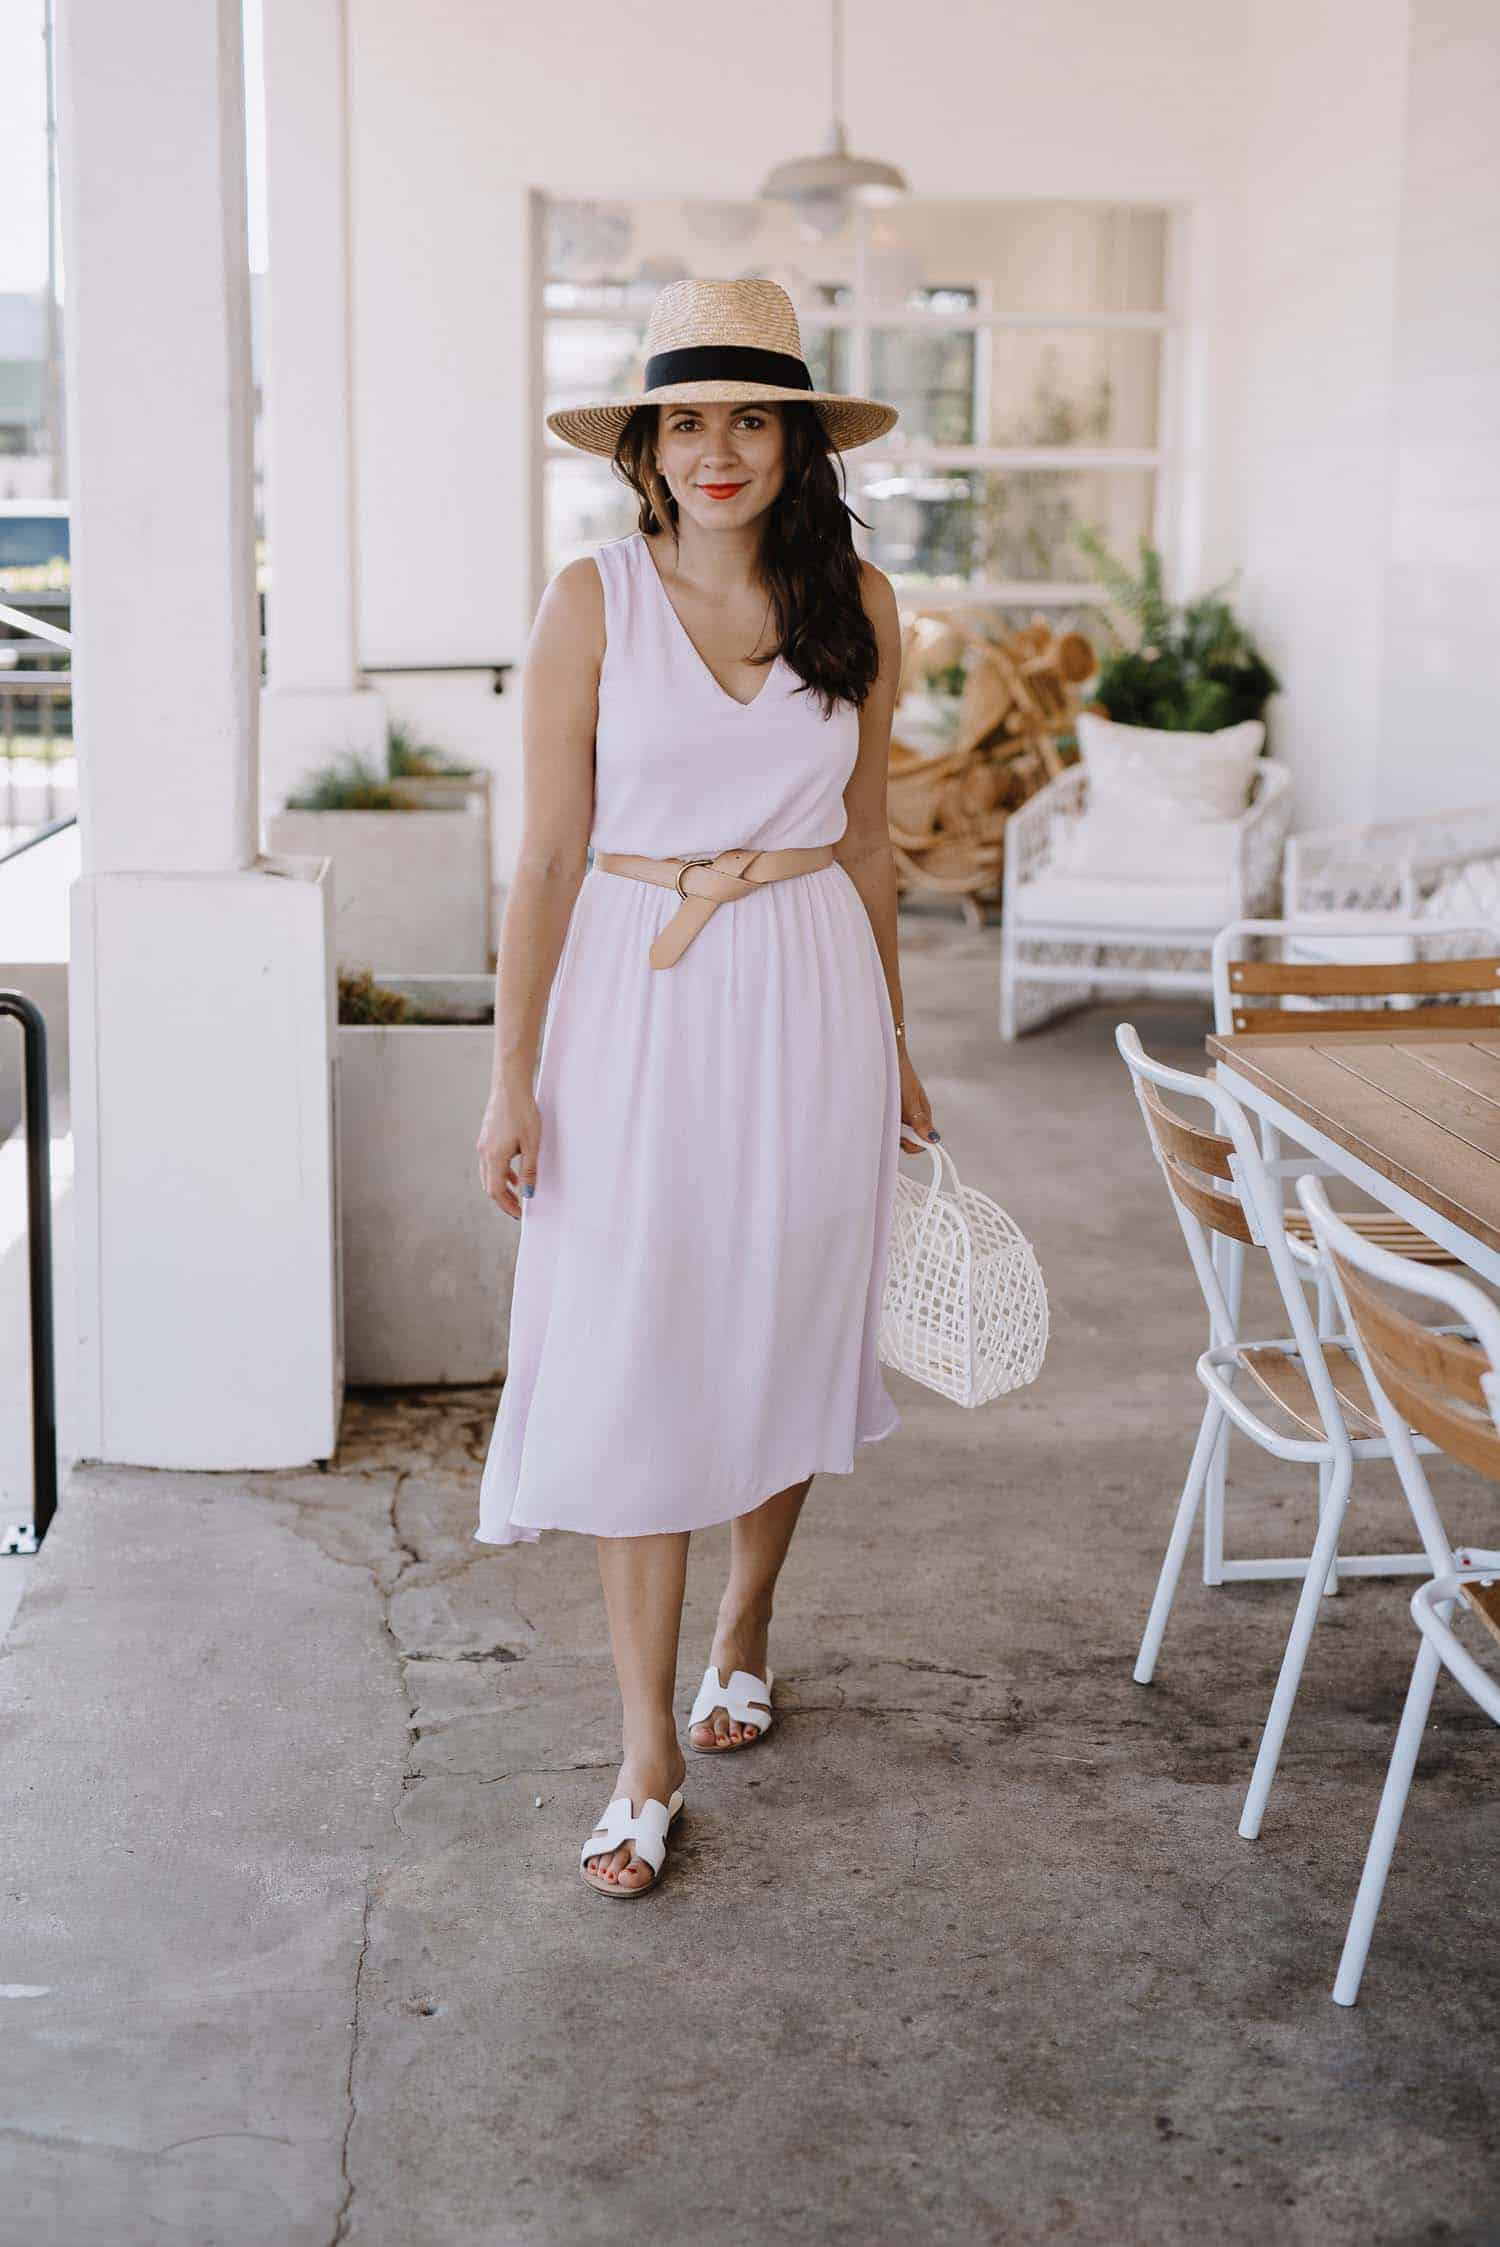 The Perfect Lilac Midi Dress For Summer - My Style Vita